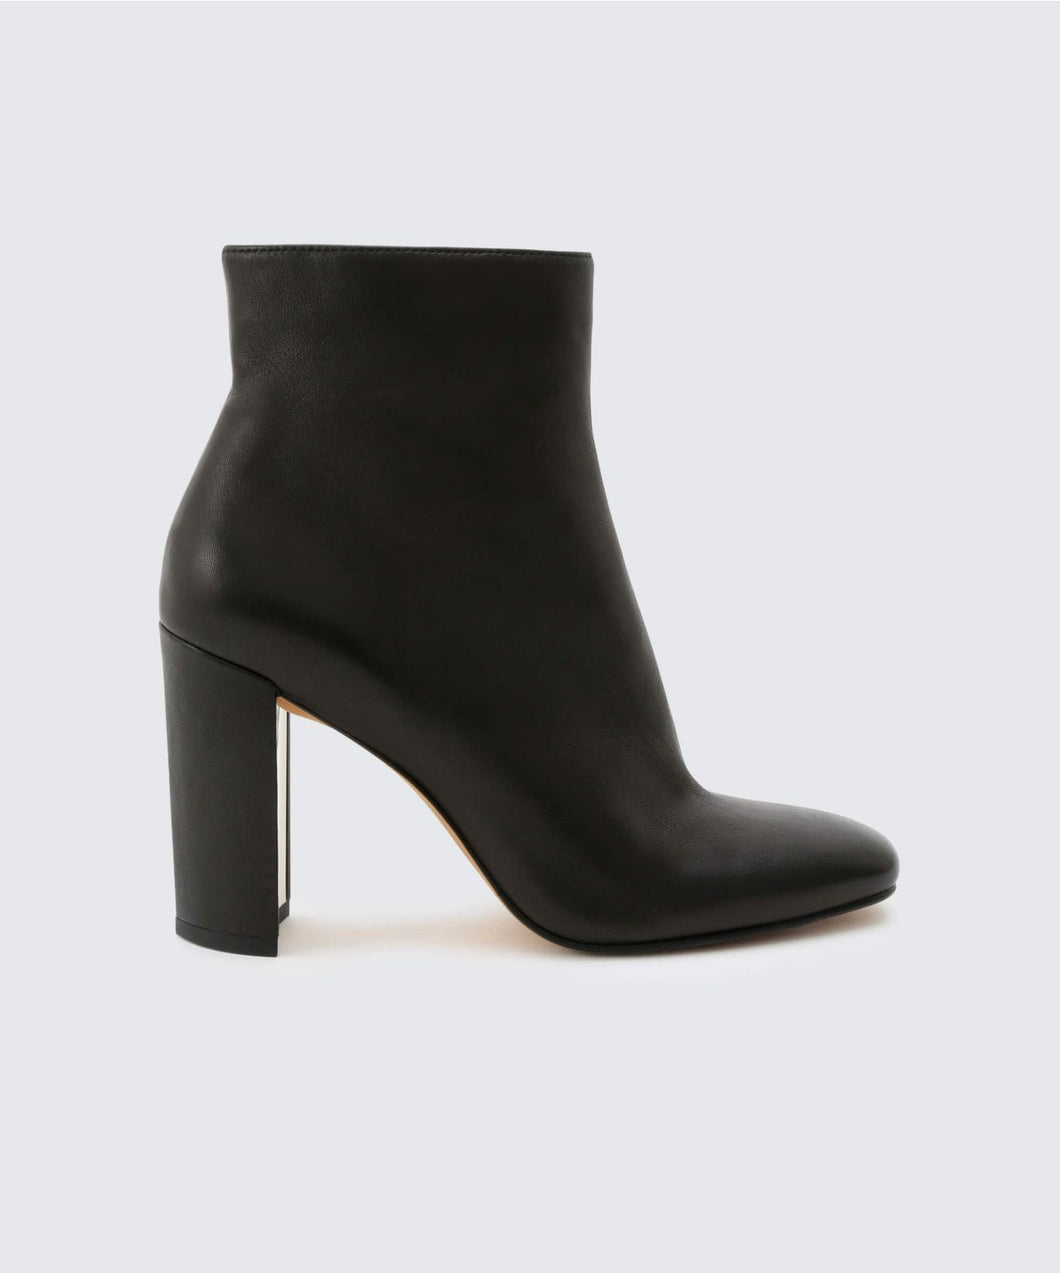 NILANI BOOTIES IN BLACK -   Dolce Vita